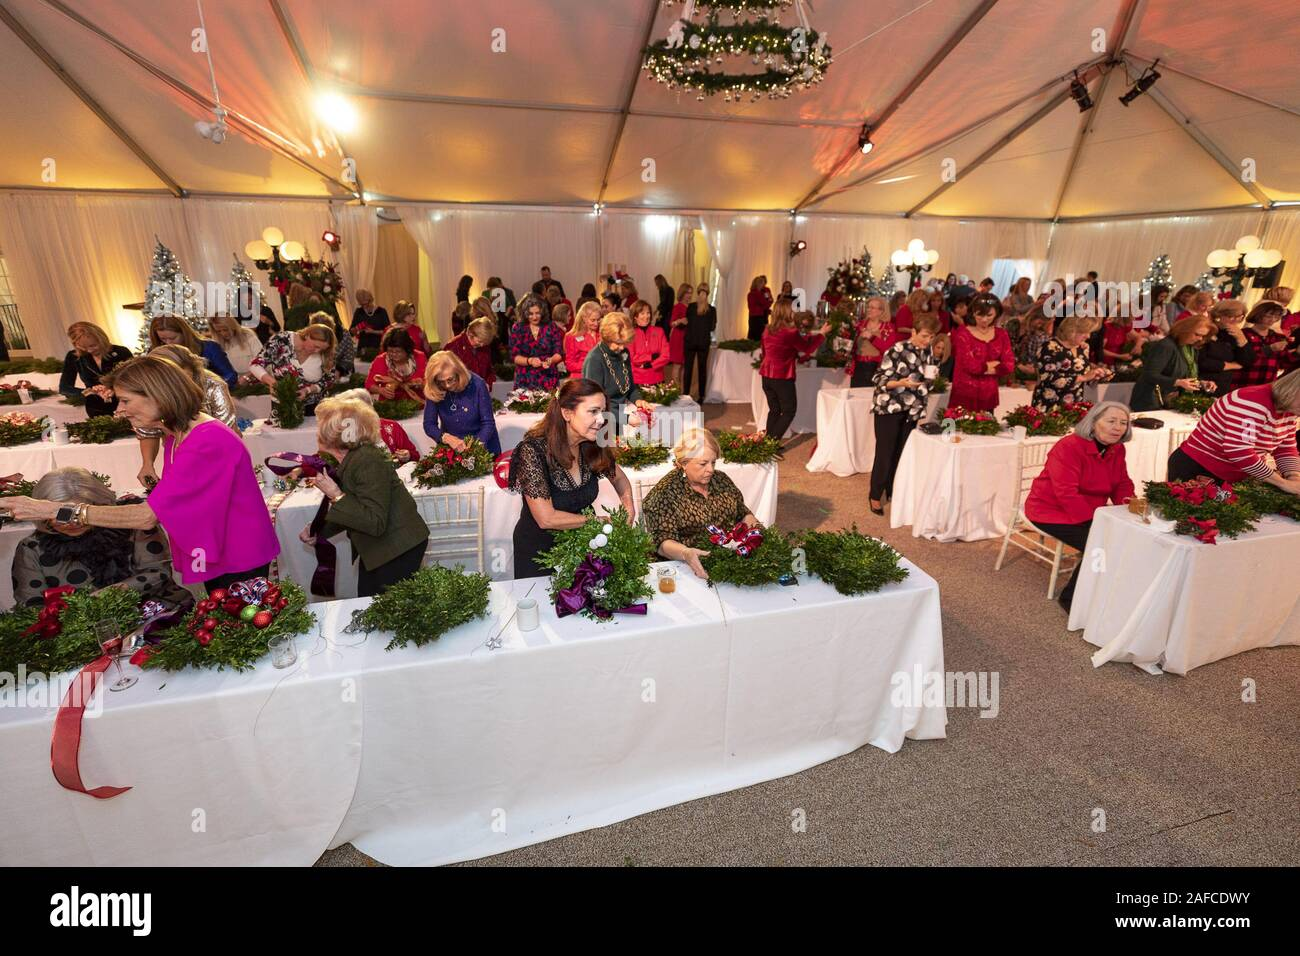 Washington, United States Of America. 11th Dec, 2019. Second Lady Karen Pence decorates Christmas wreaths with congressional spouses Wednesday, Dec. 11, 2019, at the Vice PresidentÕs Residence in Washington, D.C People: Second Lady Karen Pence Credit: Storms Media Group/Alamy Live News Stock Photo